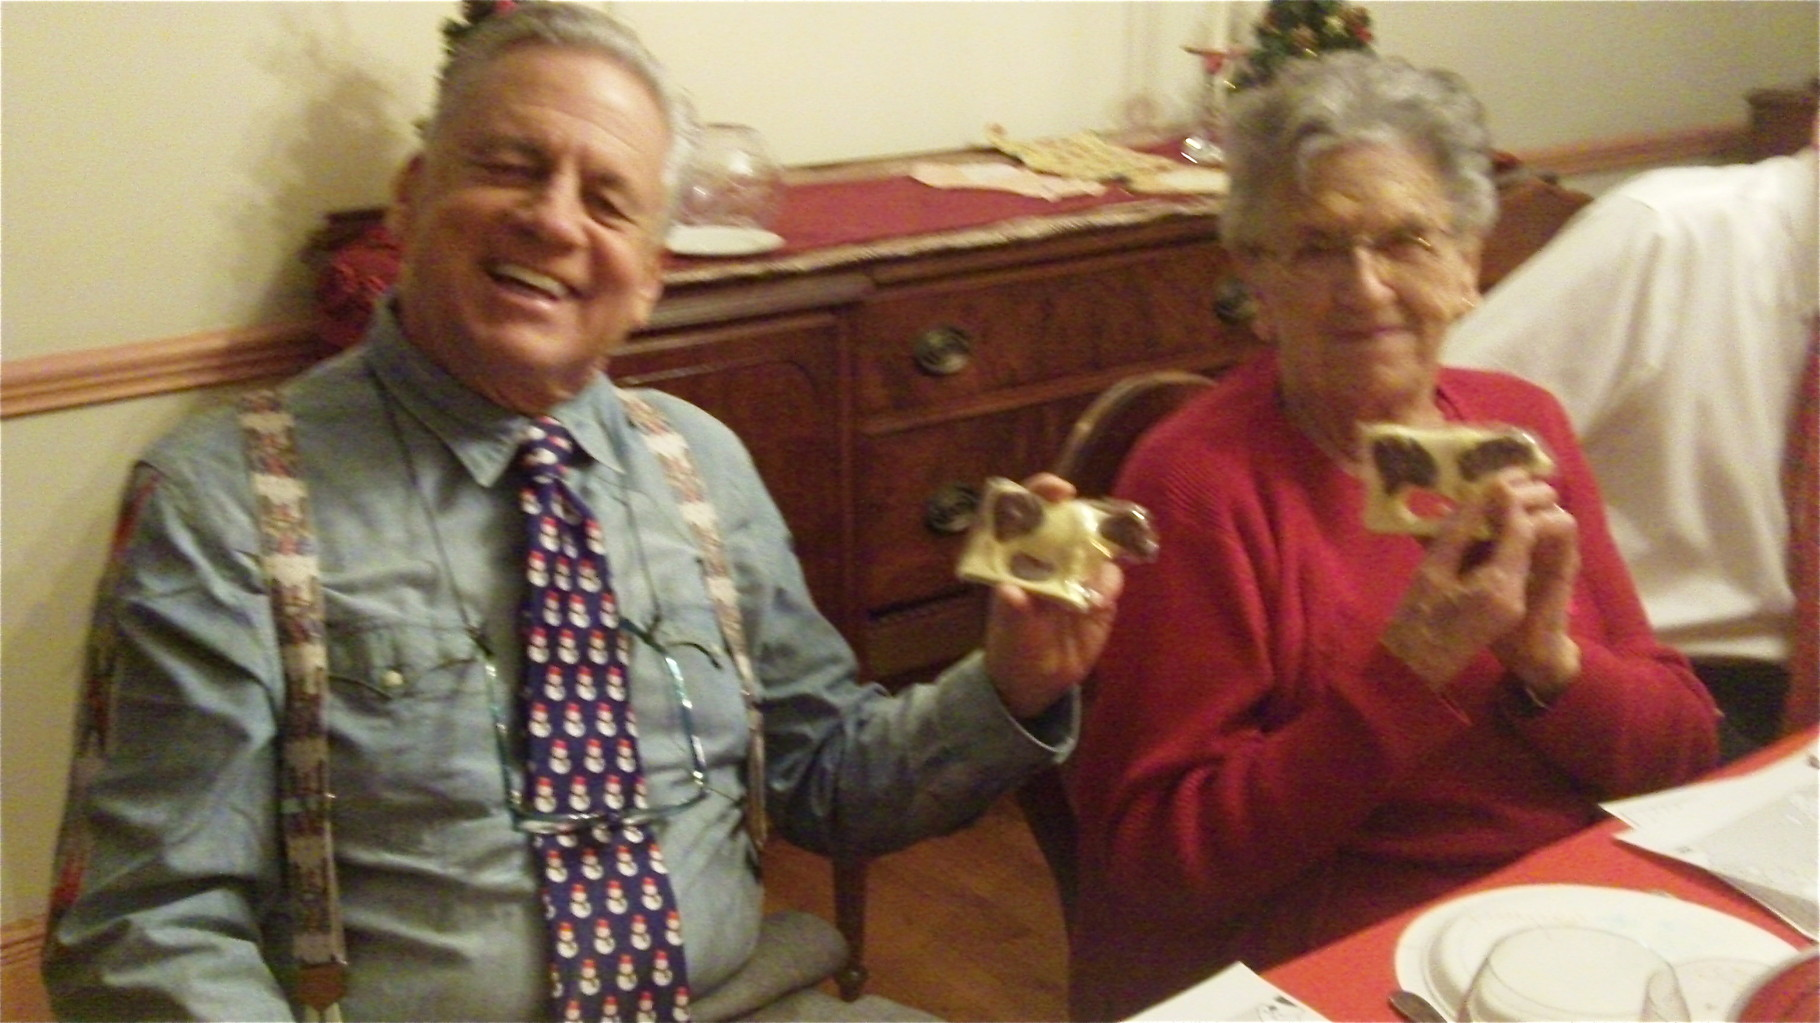 Stuart Kagel and Mary Lou Wagner with their chocolate cow prizes, Xmas Day, 2014